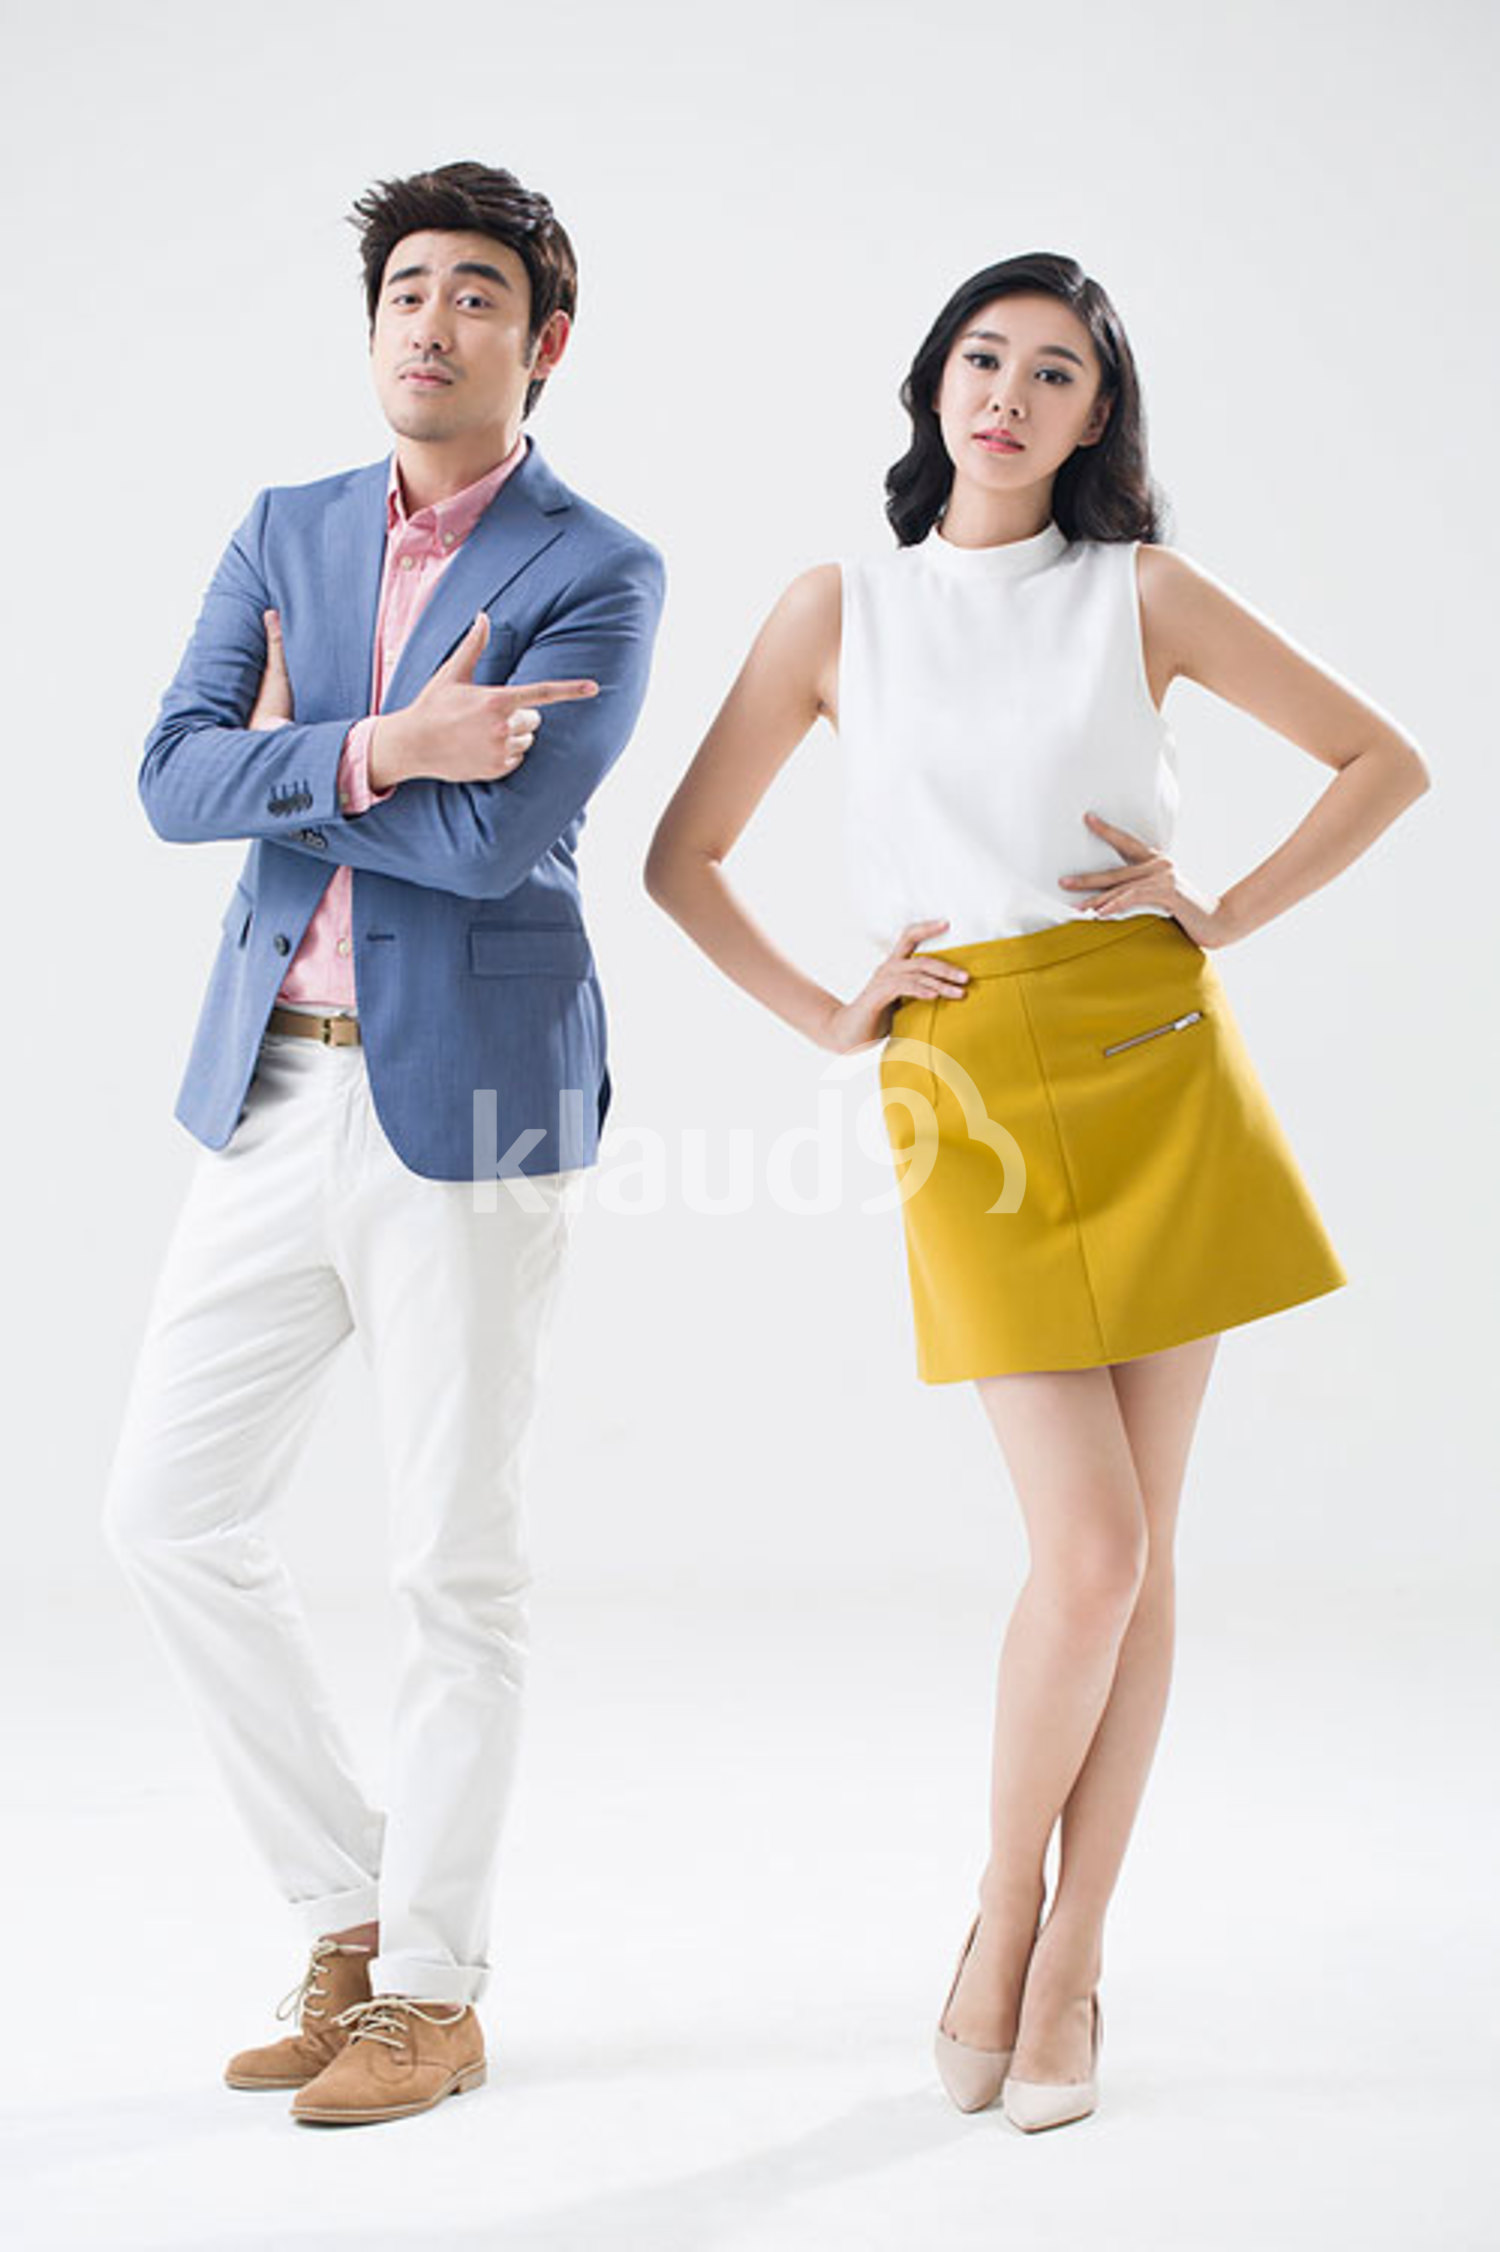 Fashionable young Chinese couple